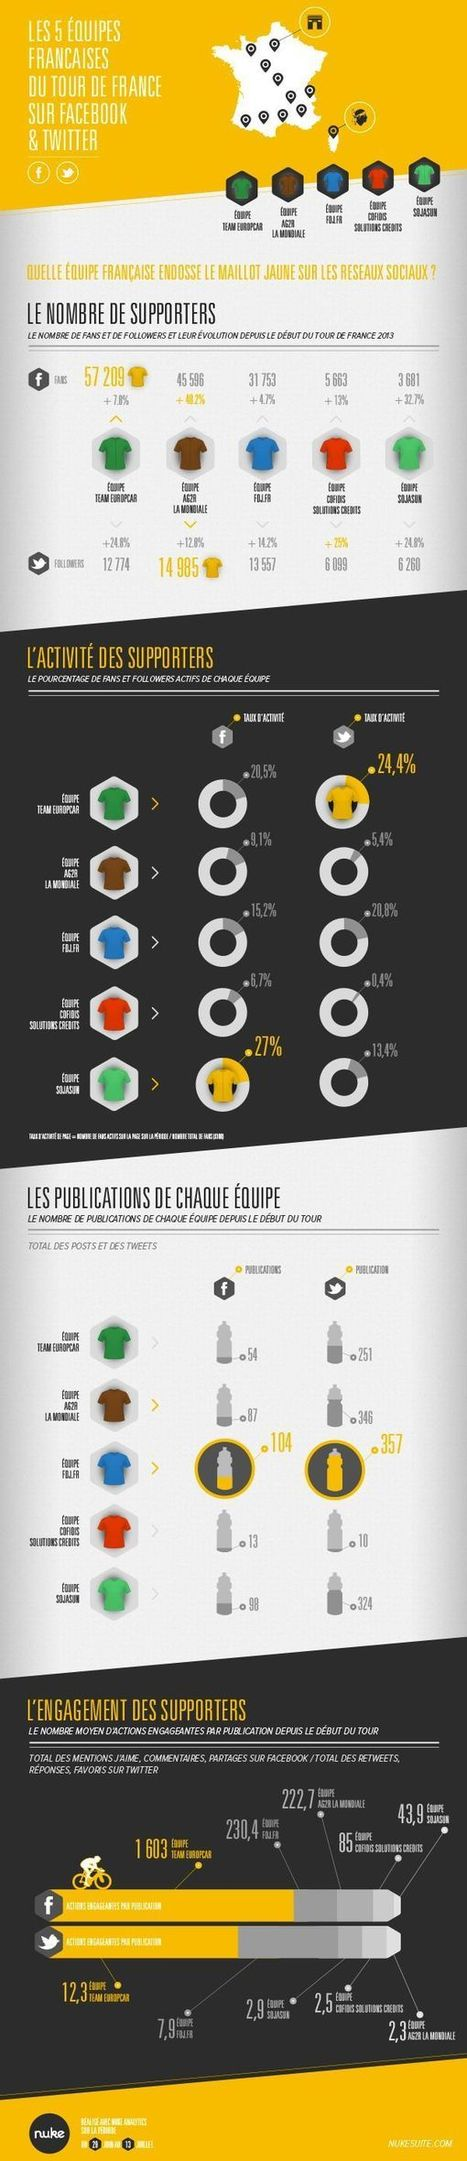 Infographies | Communication Romande | Scoop.it